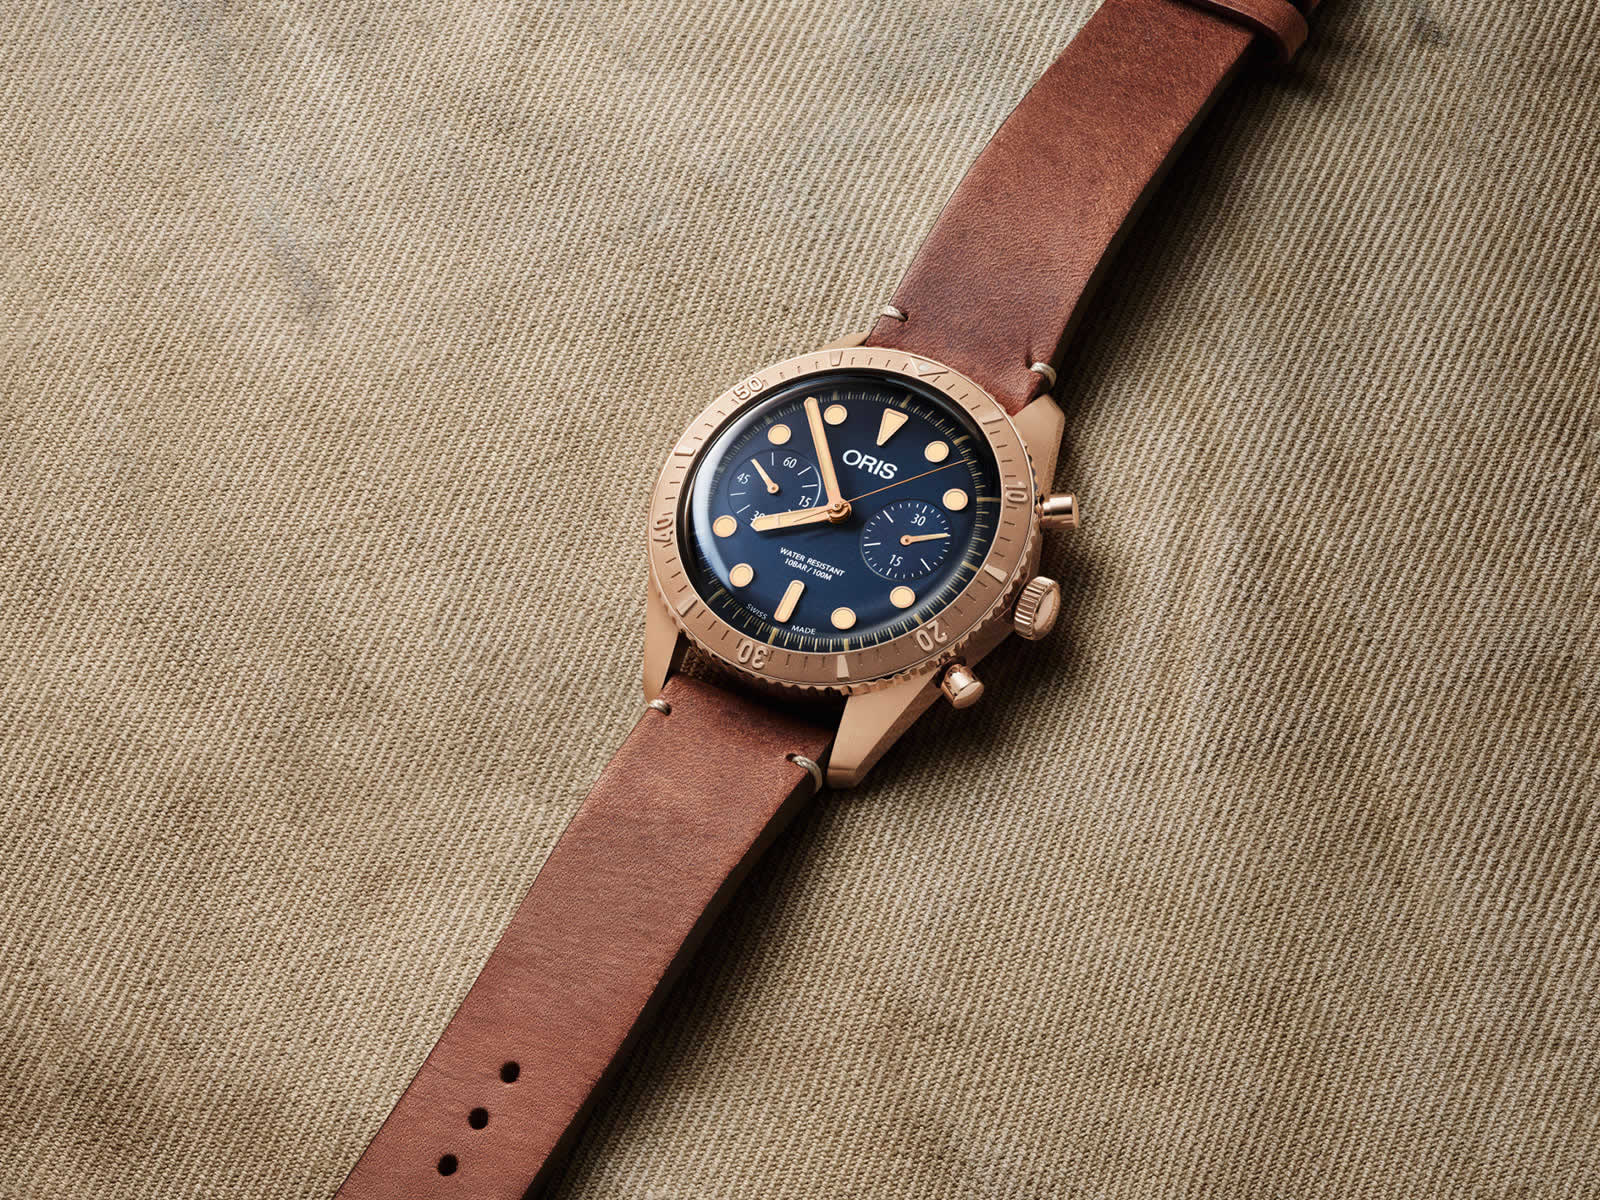 01-771-7744-3185-Oris-Carl-Brashear-Chronograph-Limited-Edition-6.jpg